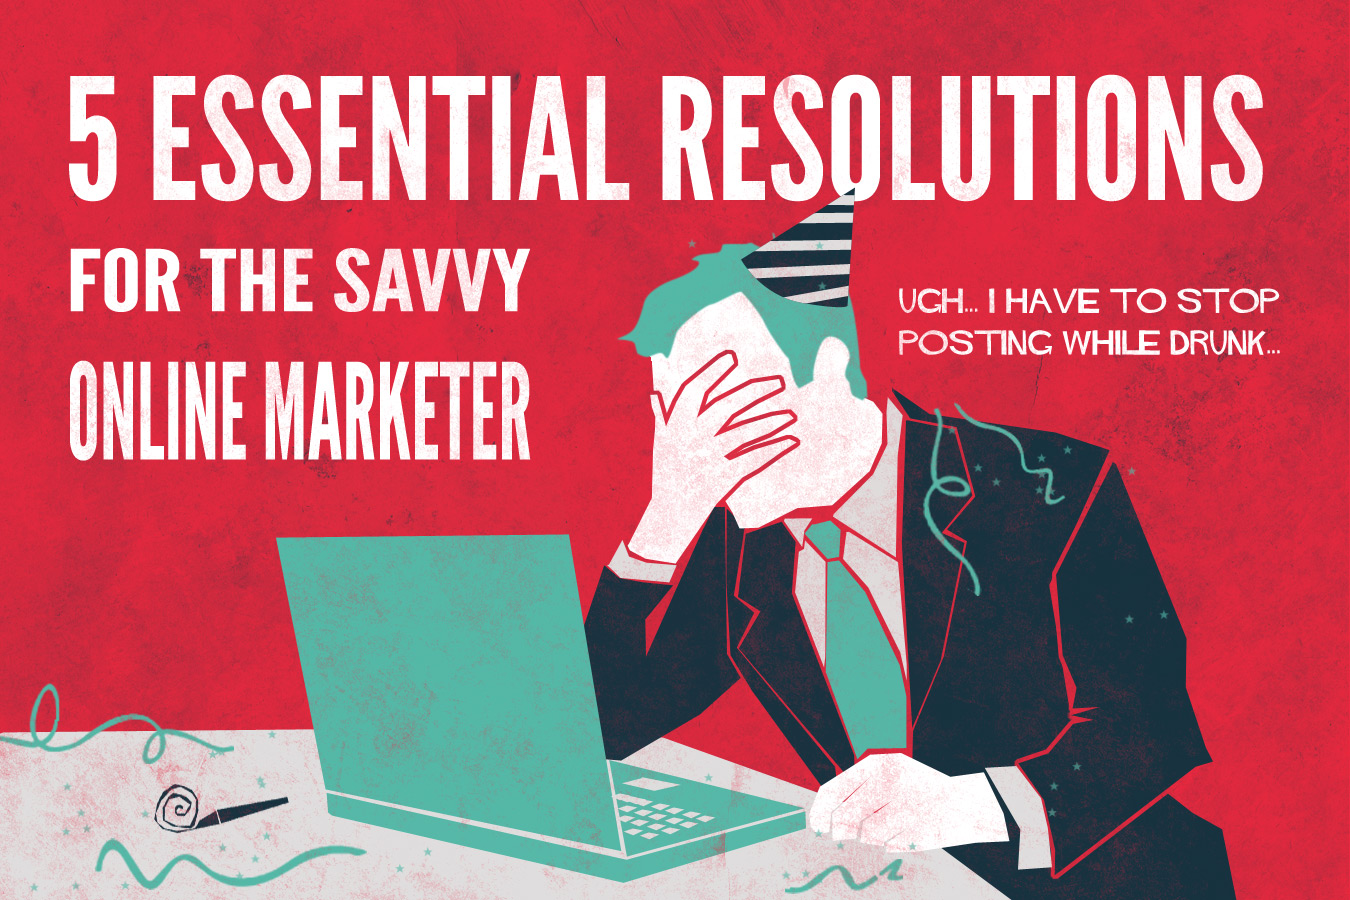 5 Digital Marketing Resolutions for 2014